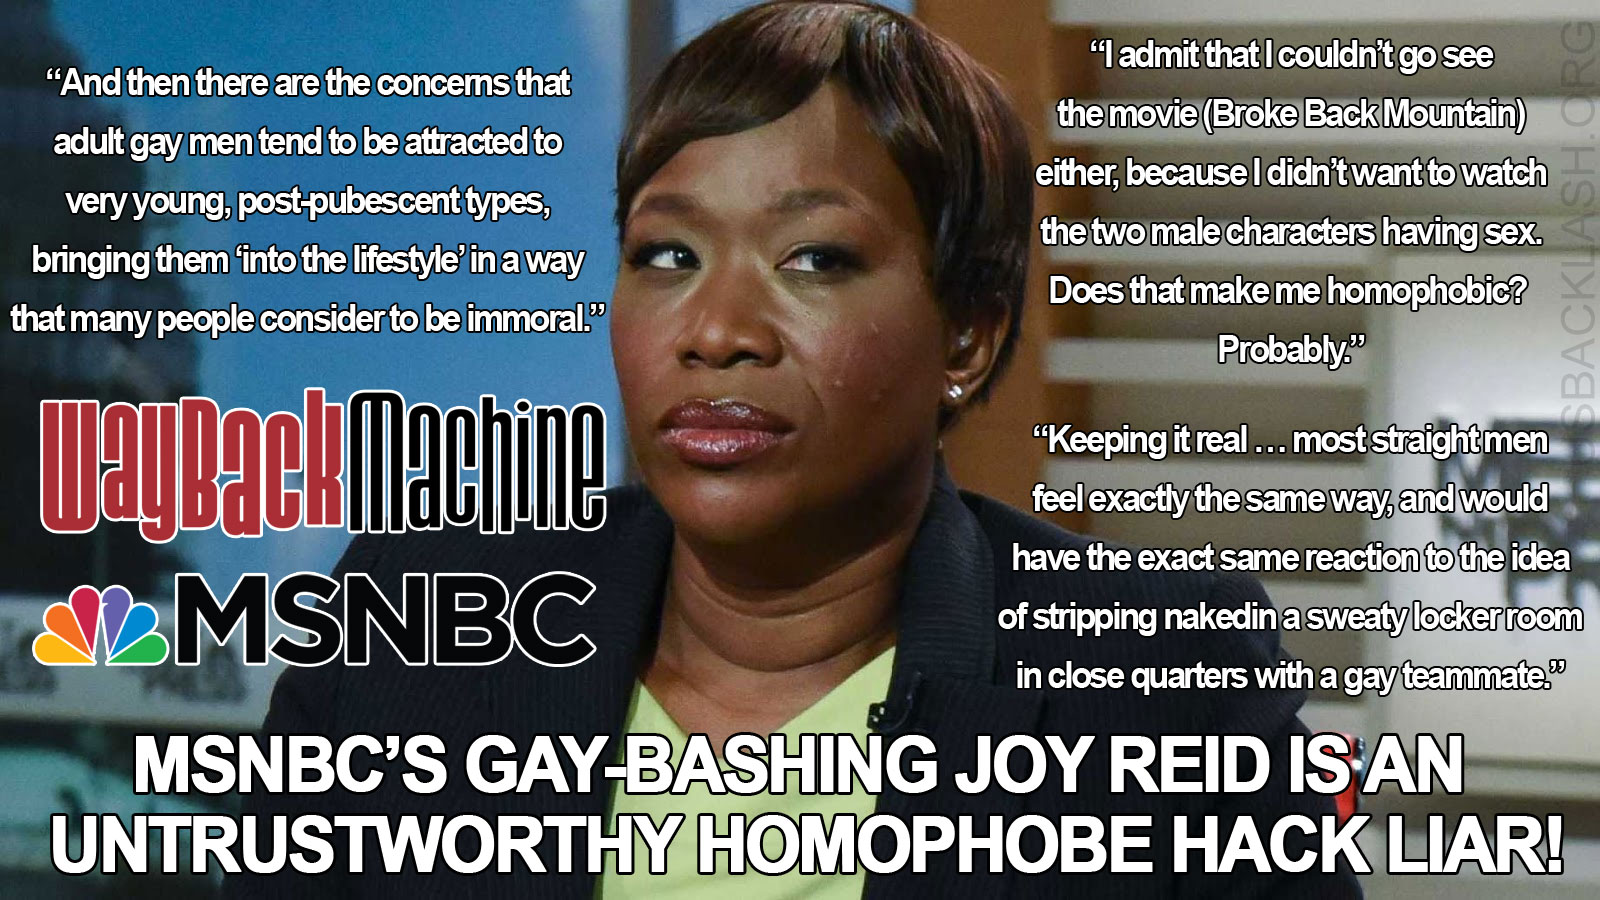 MSNBC's Hypocrite Joy Reid's Gay-Bashing Blog Posts Revealed Before Being Scrubbed From the Internet Way Back Machine